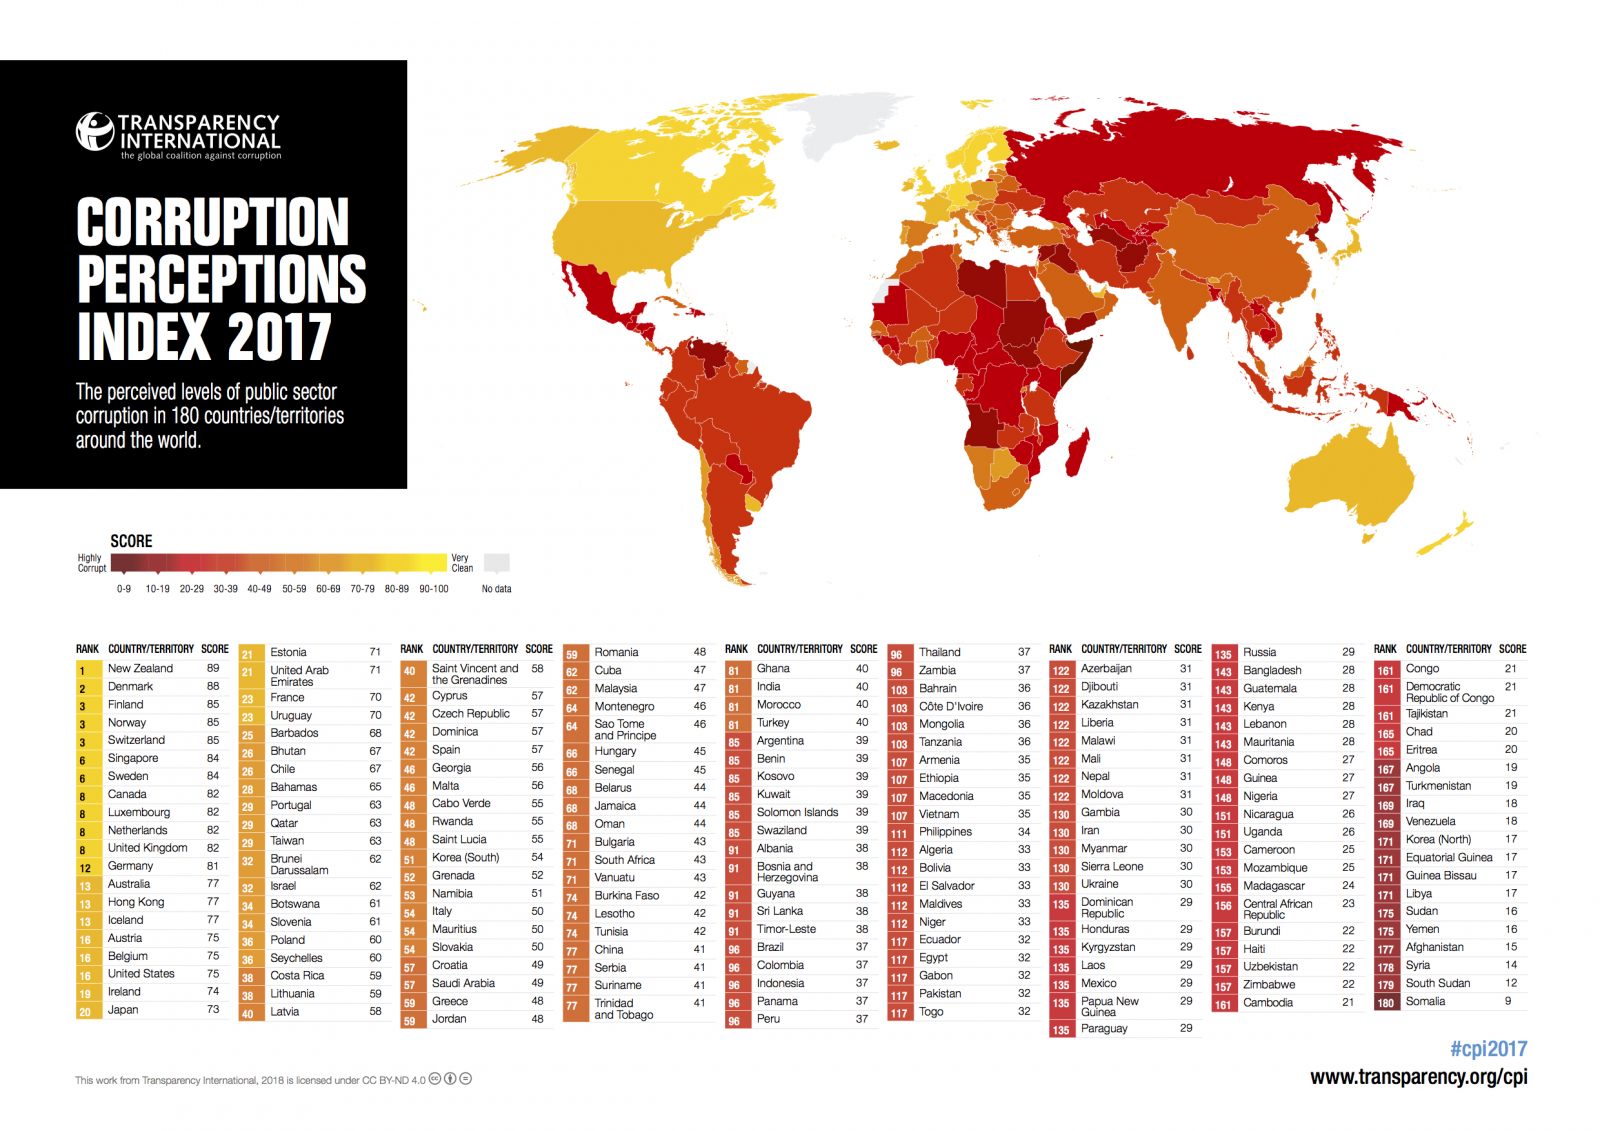 World's most corrupted countries